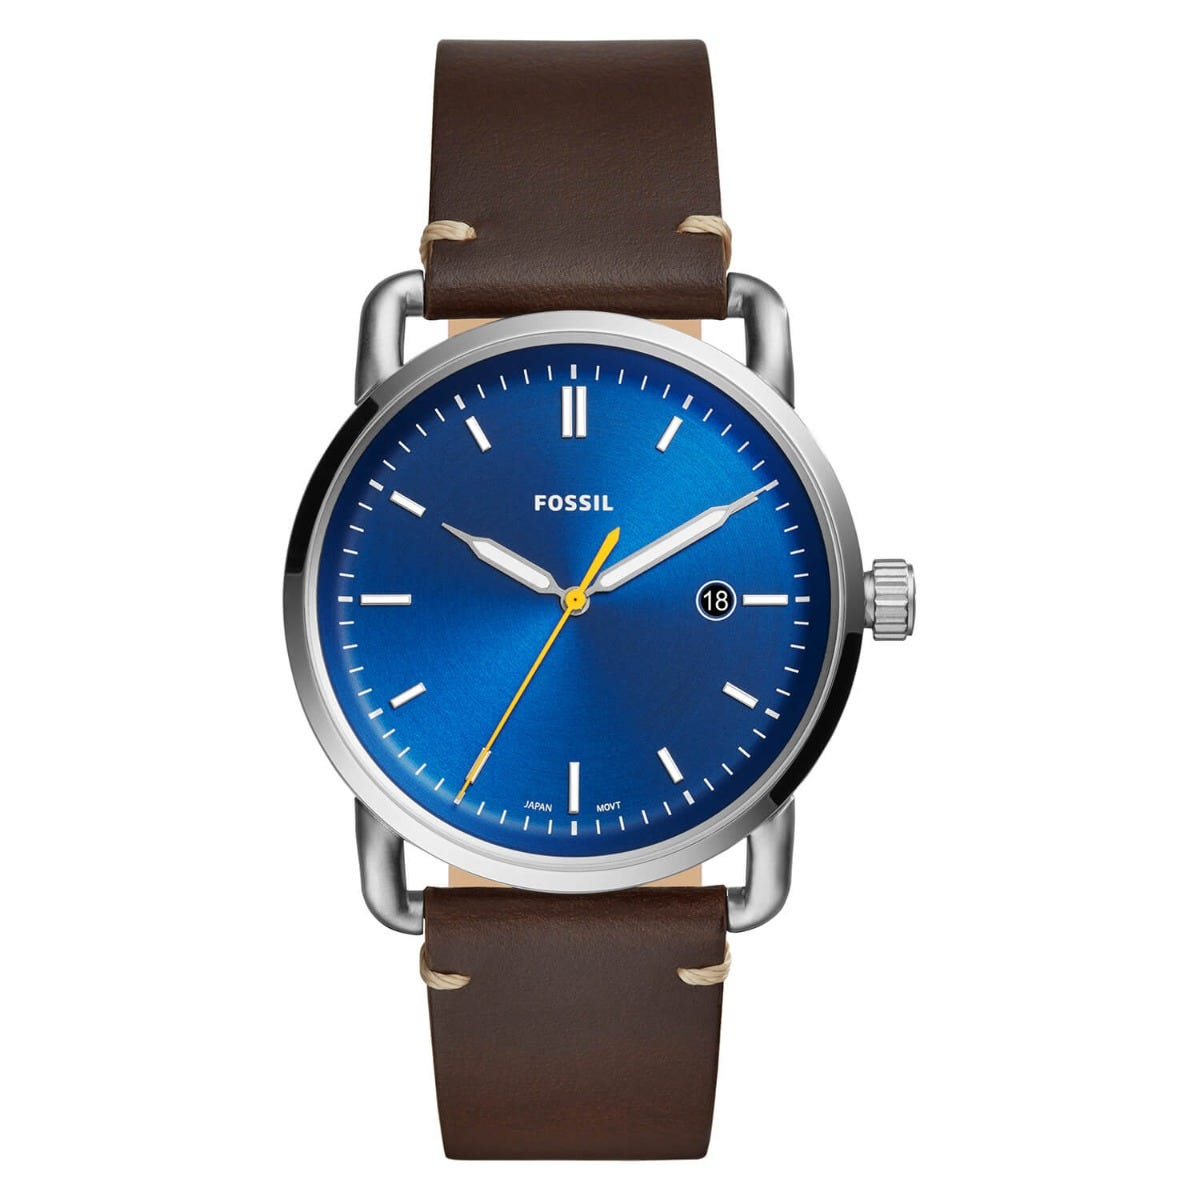 Fossil The Commuter Blue Dial Brown Strap Watch